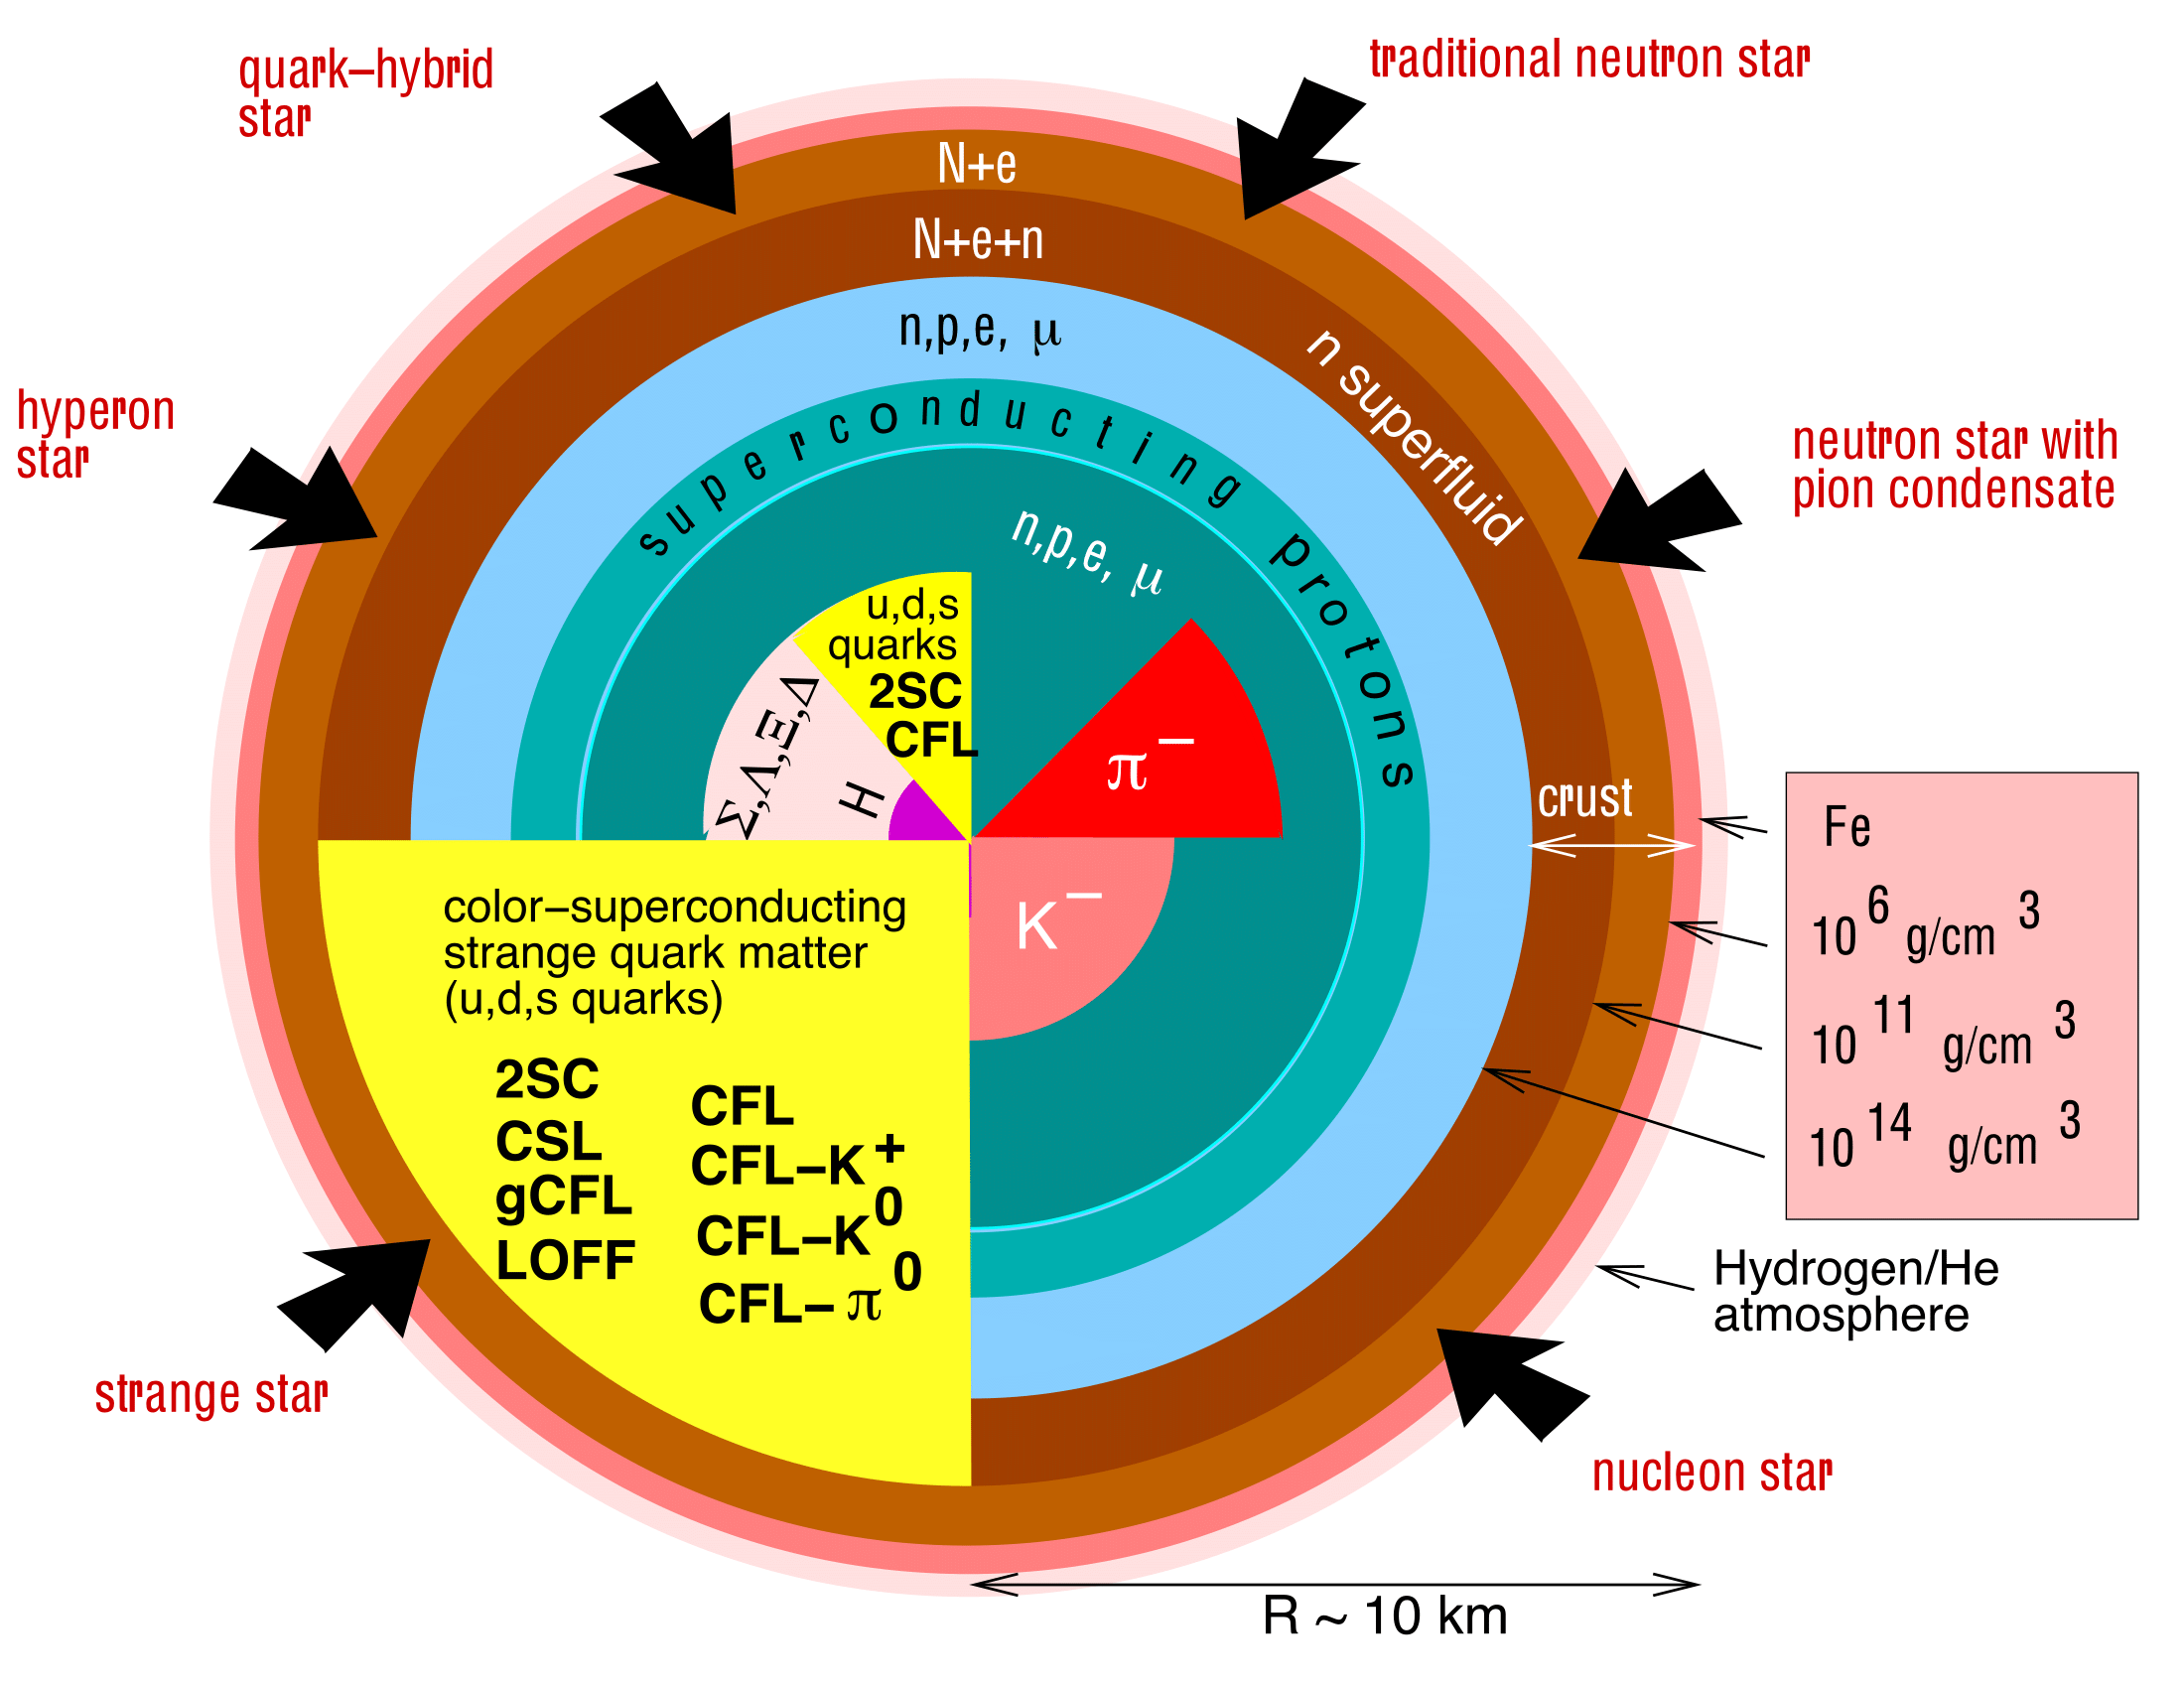 The picture illustrates some of the possible forms of matter existing inside of neutron stars. It has been created by the physicist Fridolin Weber (http://www.physics.sdsu.edu/fweber/) an expert on the equation of state of dense stellar matter. Image Credit: Progress in Nuclear and Particle Physics